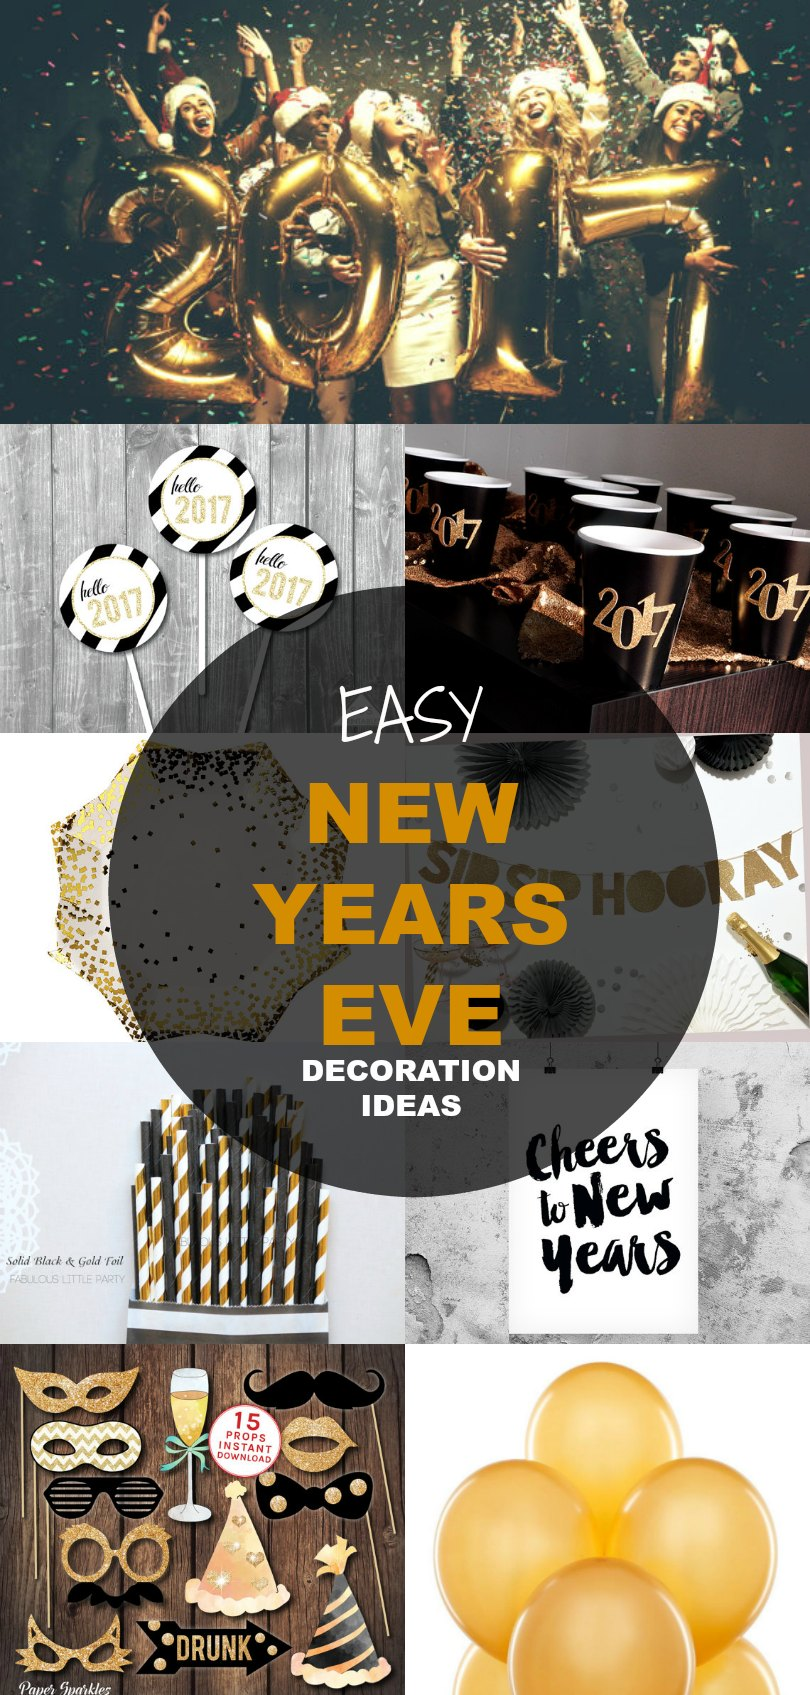 21 New Years Eve Decoration Ideas On The Cutting Floor Printable